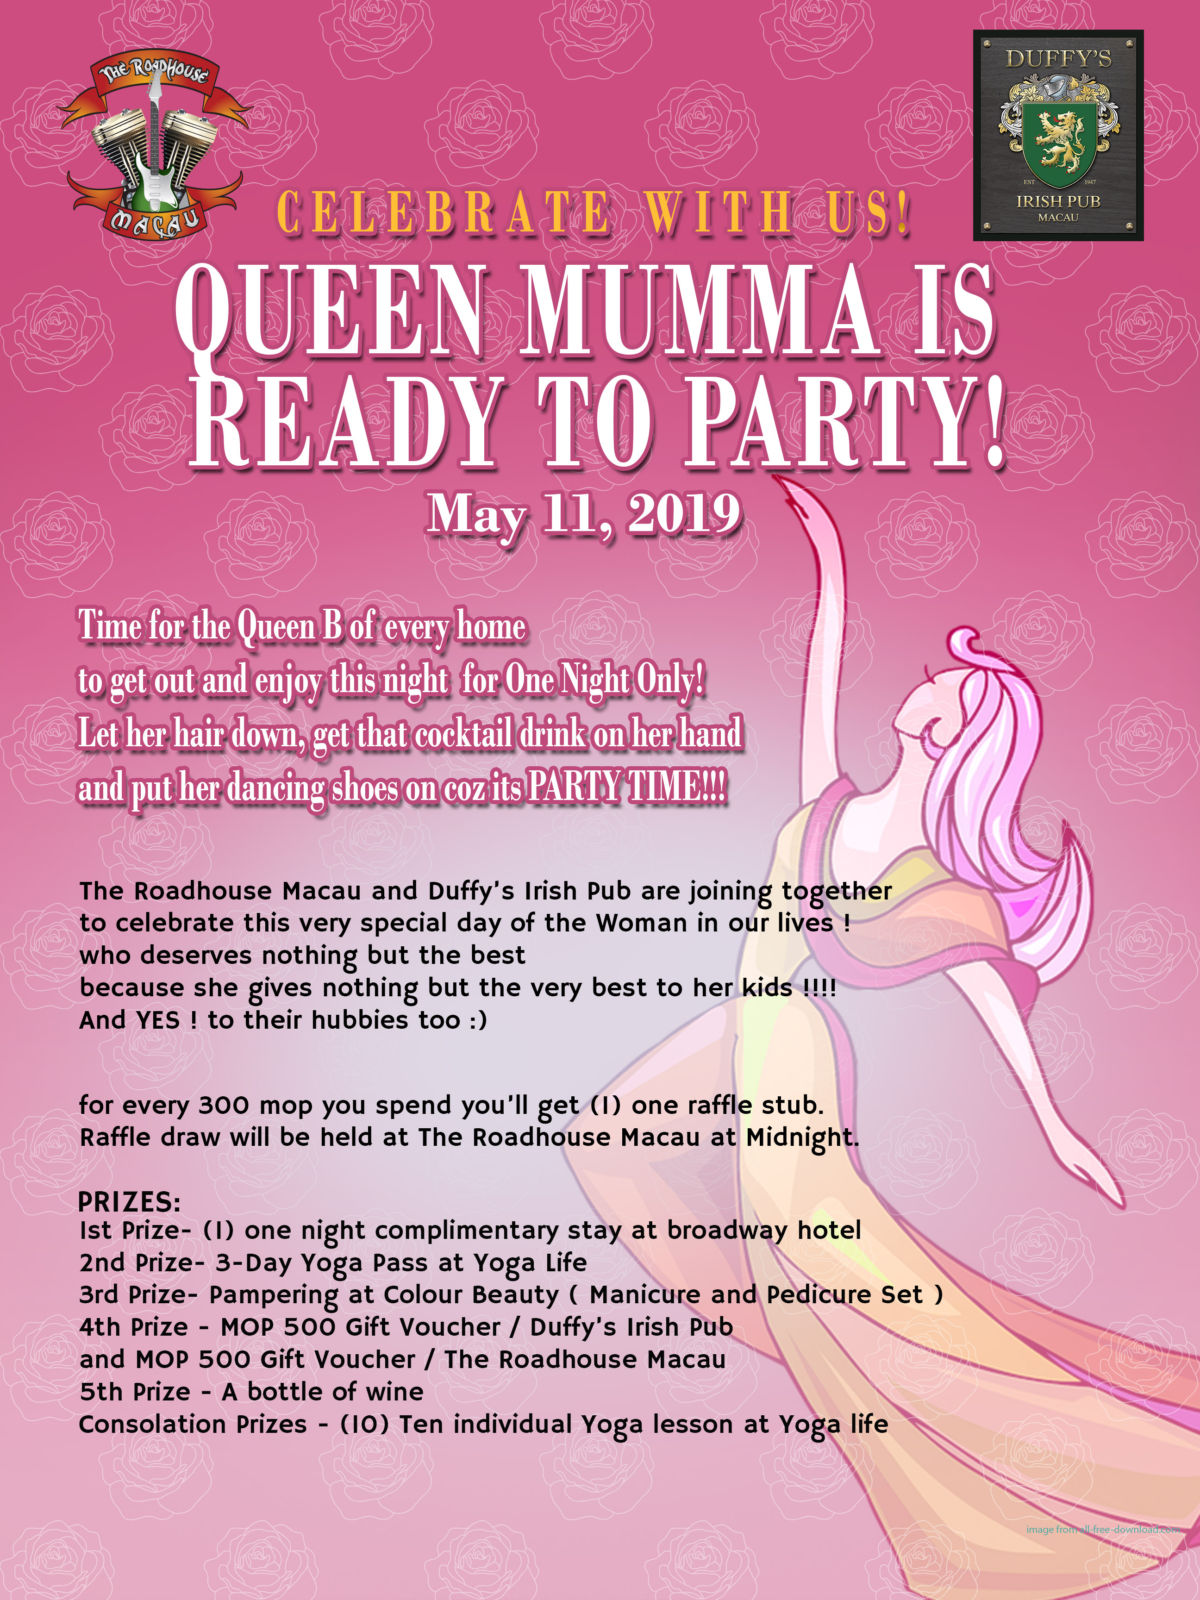 RH Macau's Mothers Day Poster 2019 2